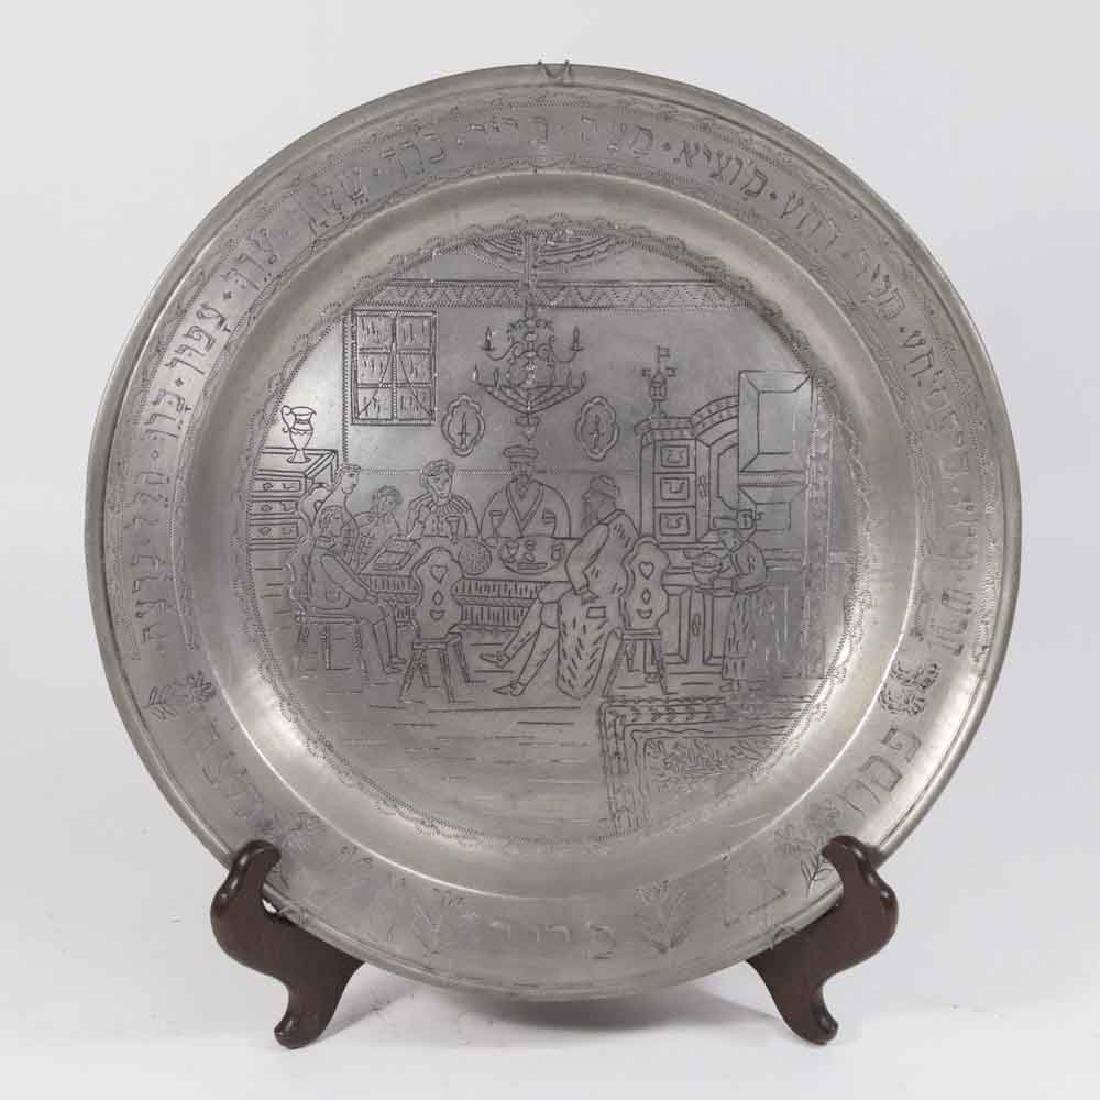 Pesach Passover Pewter Plate